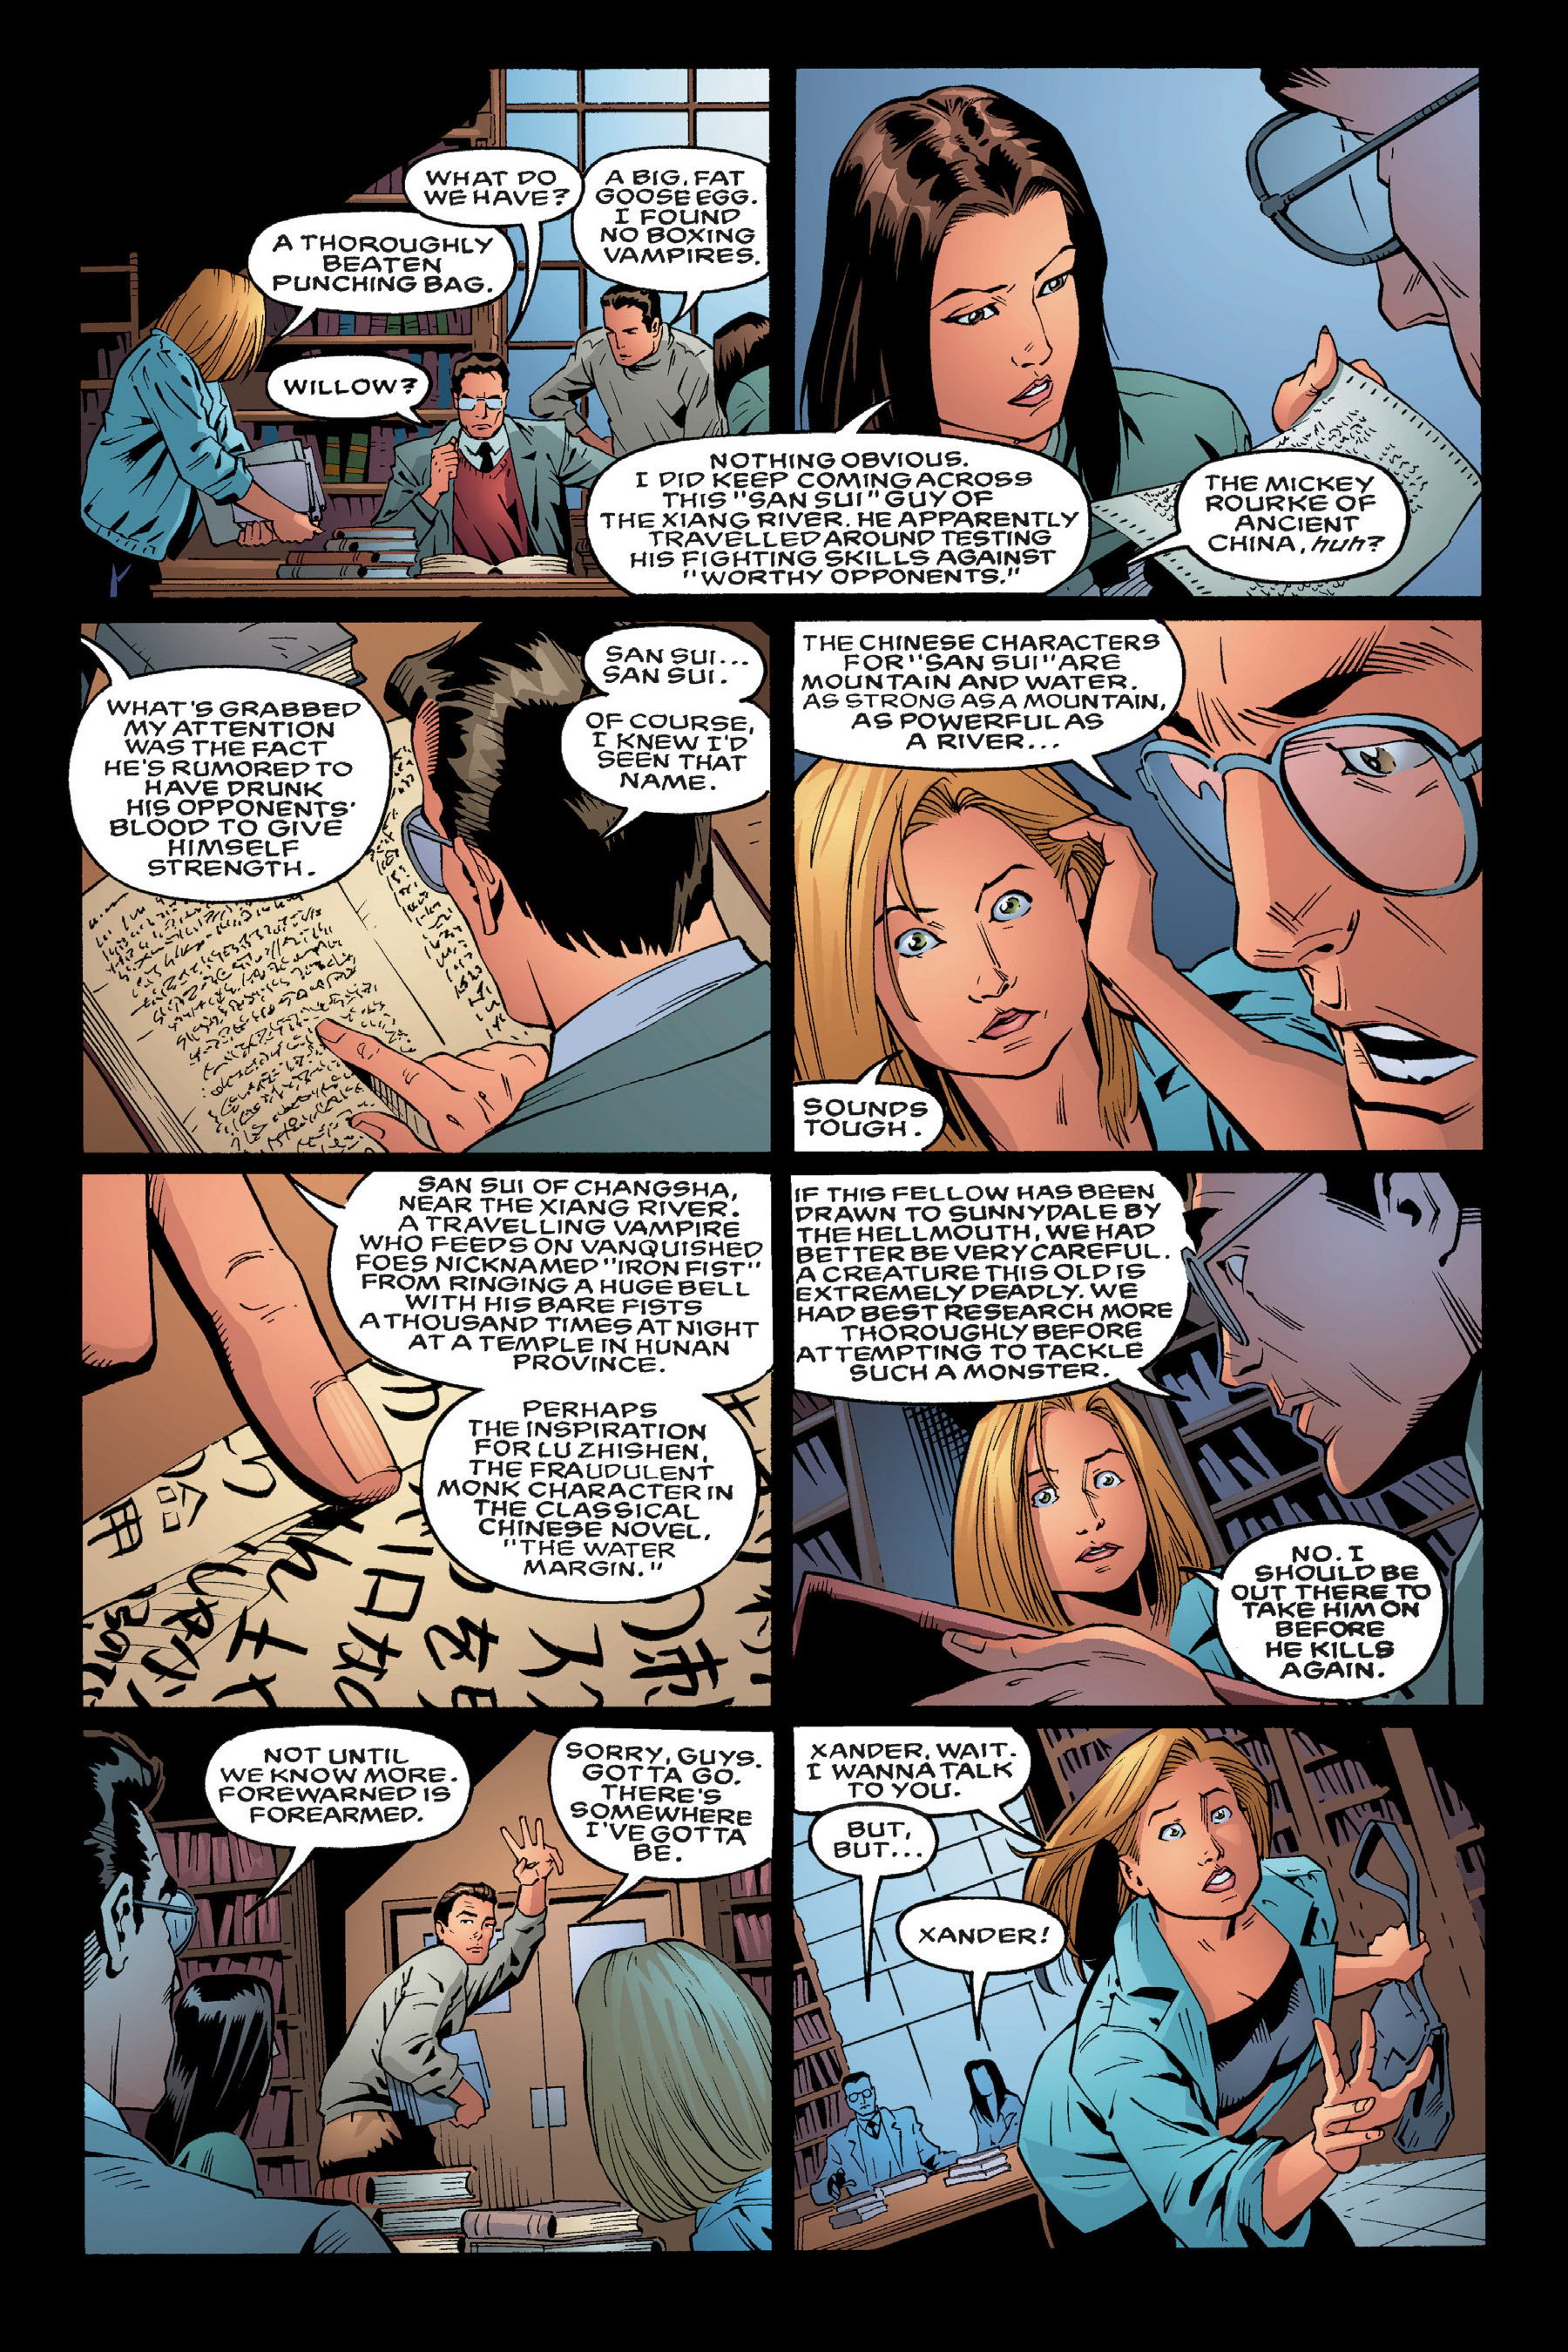 Read online Buffy the Vampire Slayer: Omnibus comic -  Issue # TPB 3 - 24